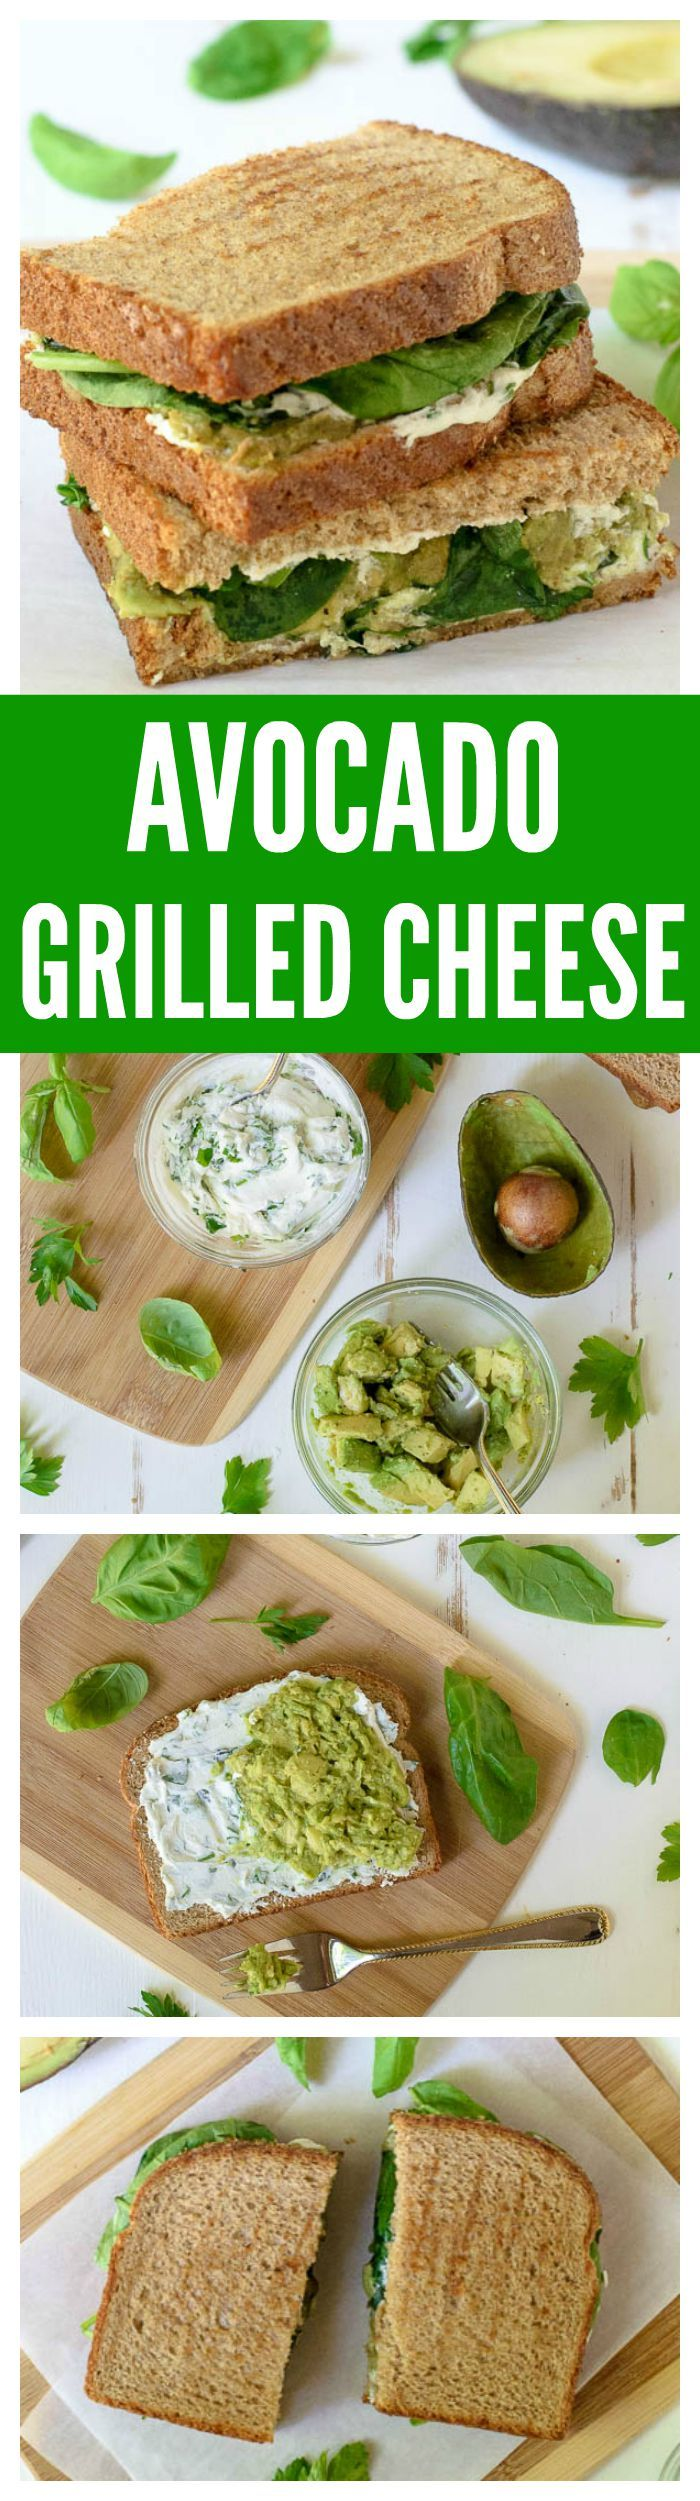 Avocado Grilled Cheese with Goat Cheese and Garlic. Creamy and delicious!